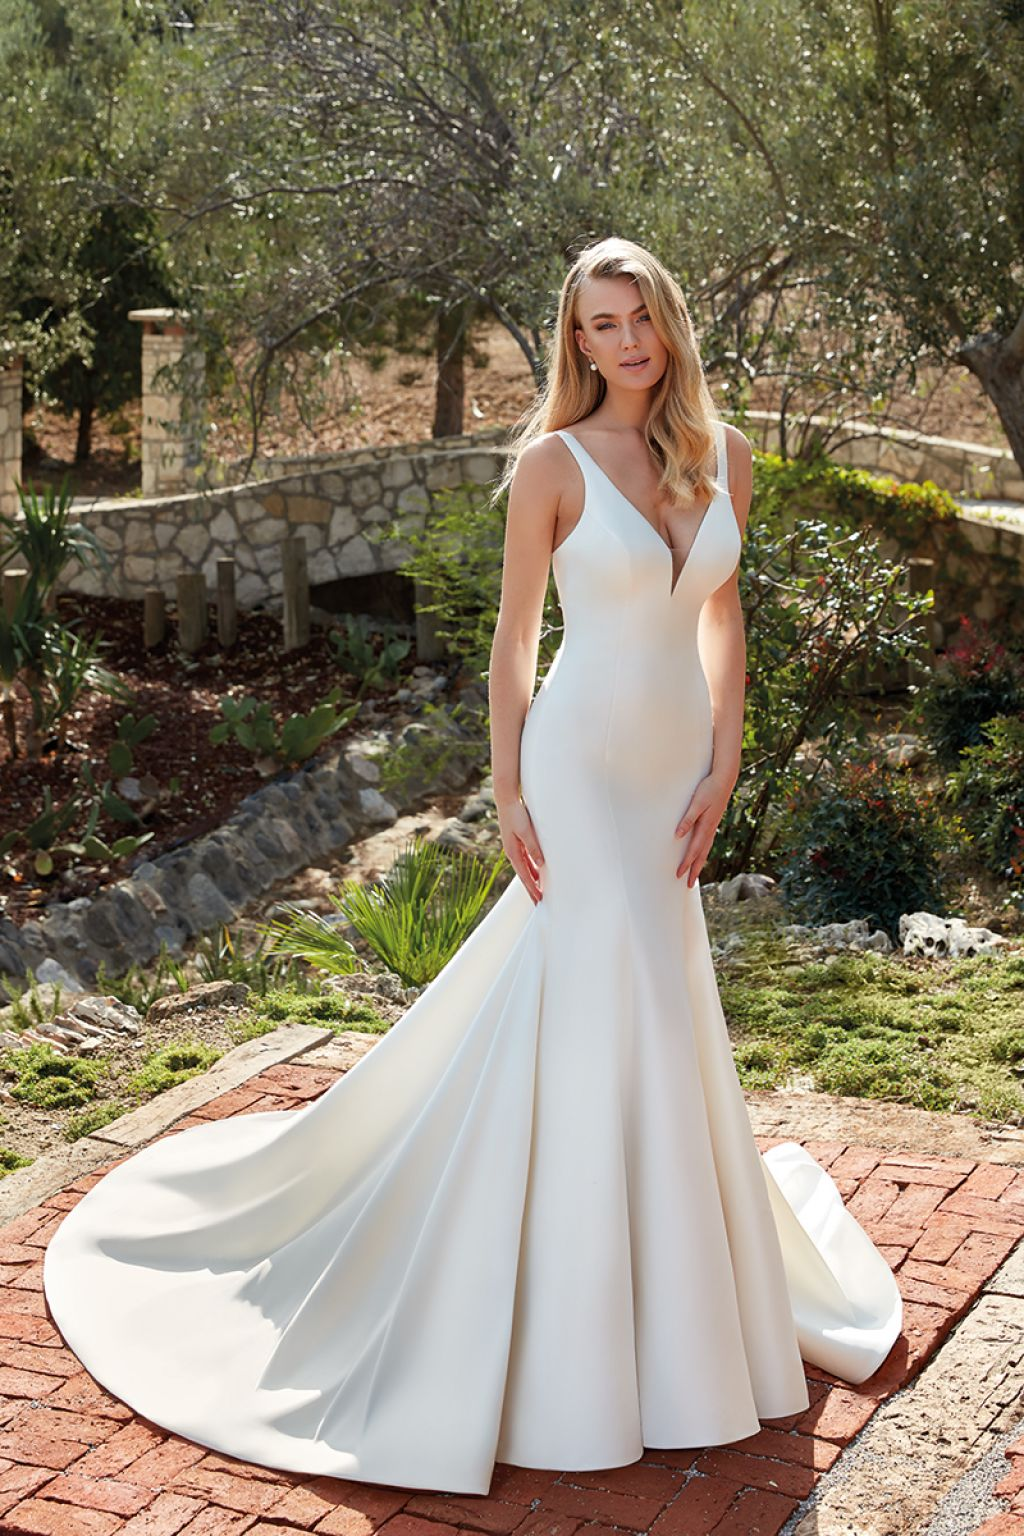 Bride with long blonde hair wearing simple V-neck wedding gown outside on brick path